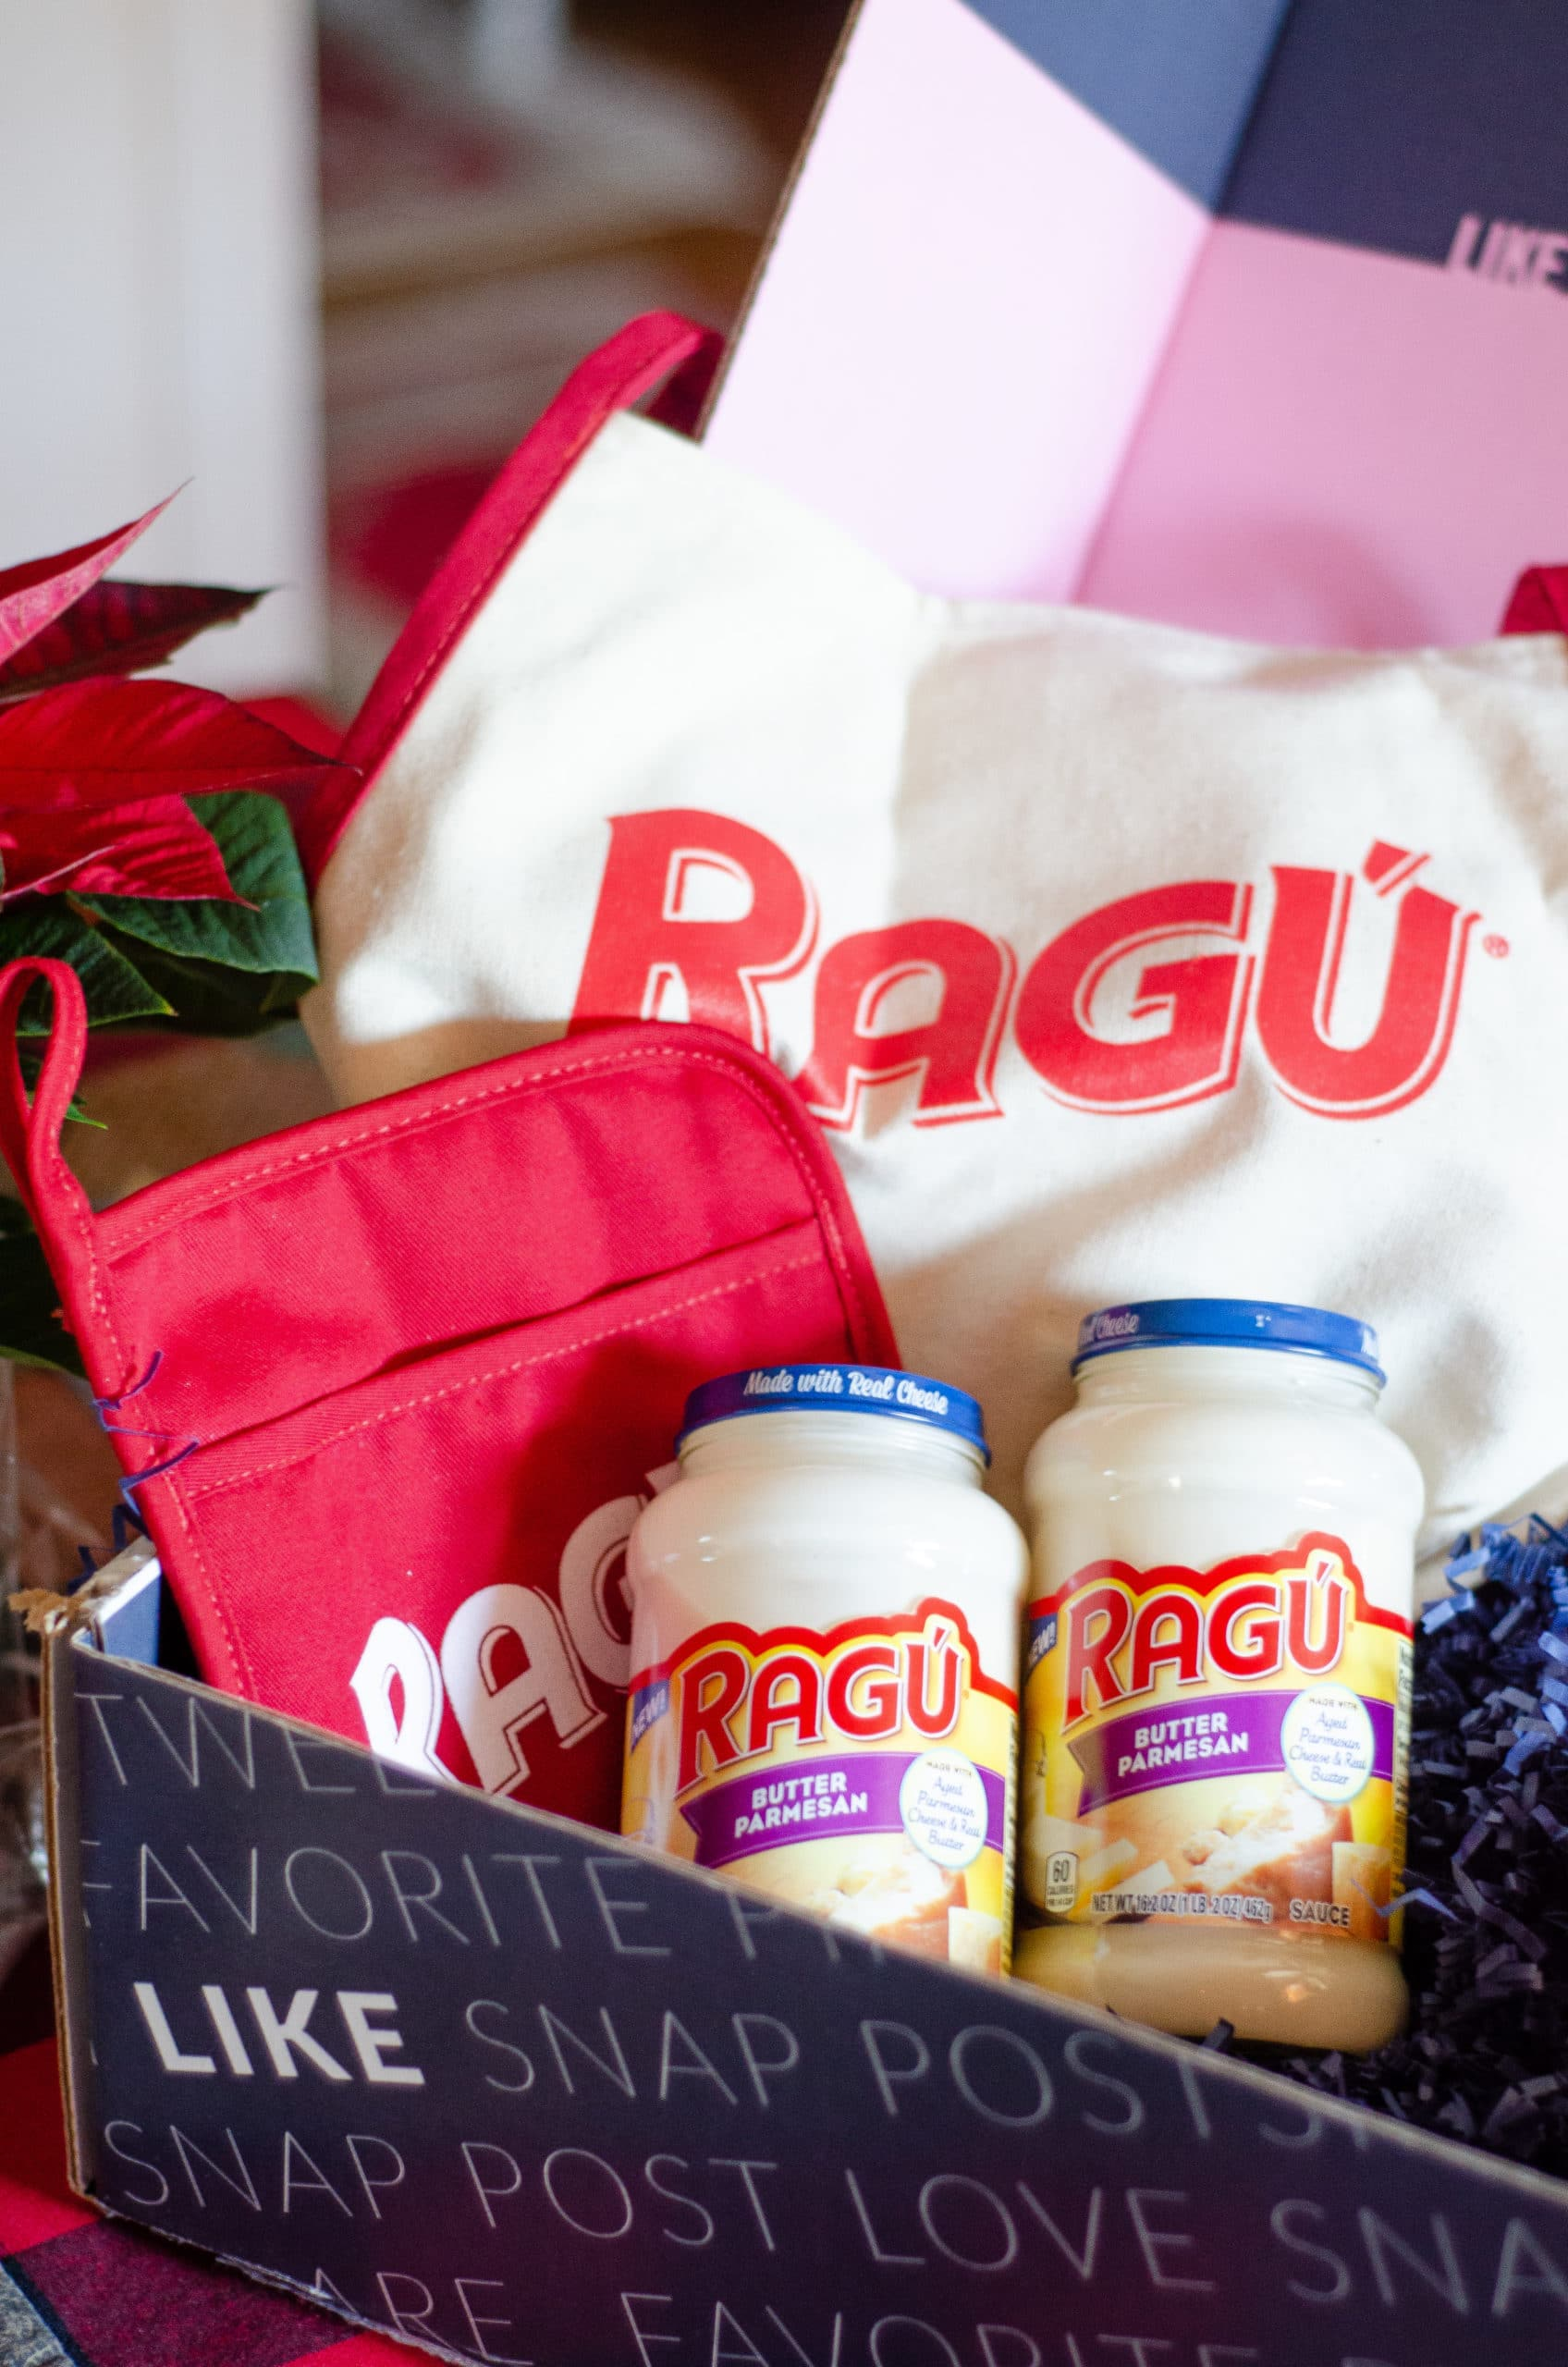 Ragu Butter Parmesan Sauce. Gift your hostess a Thanksgiving themed box of goodies. Gift them products they can use on Thanksgiving Day as well as after.